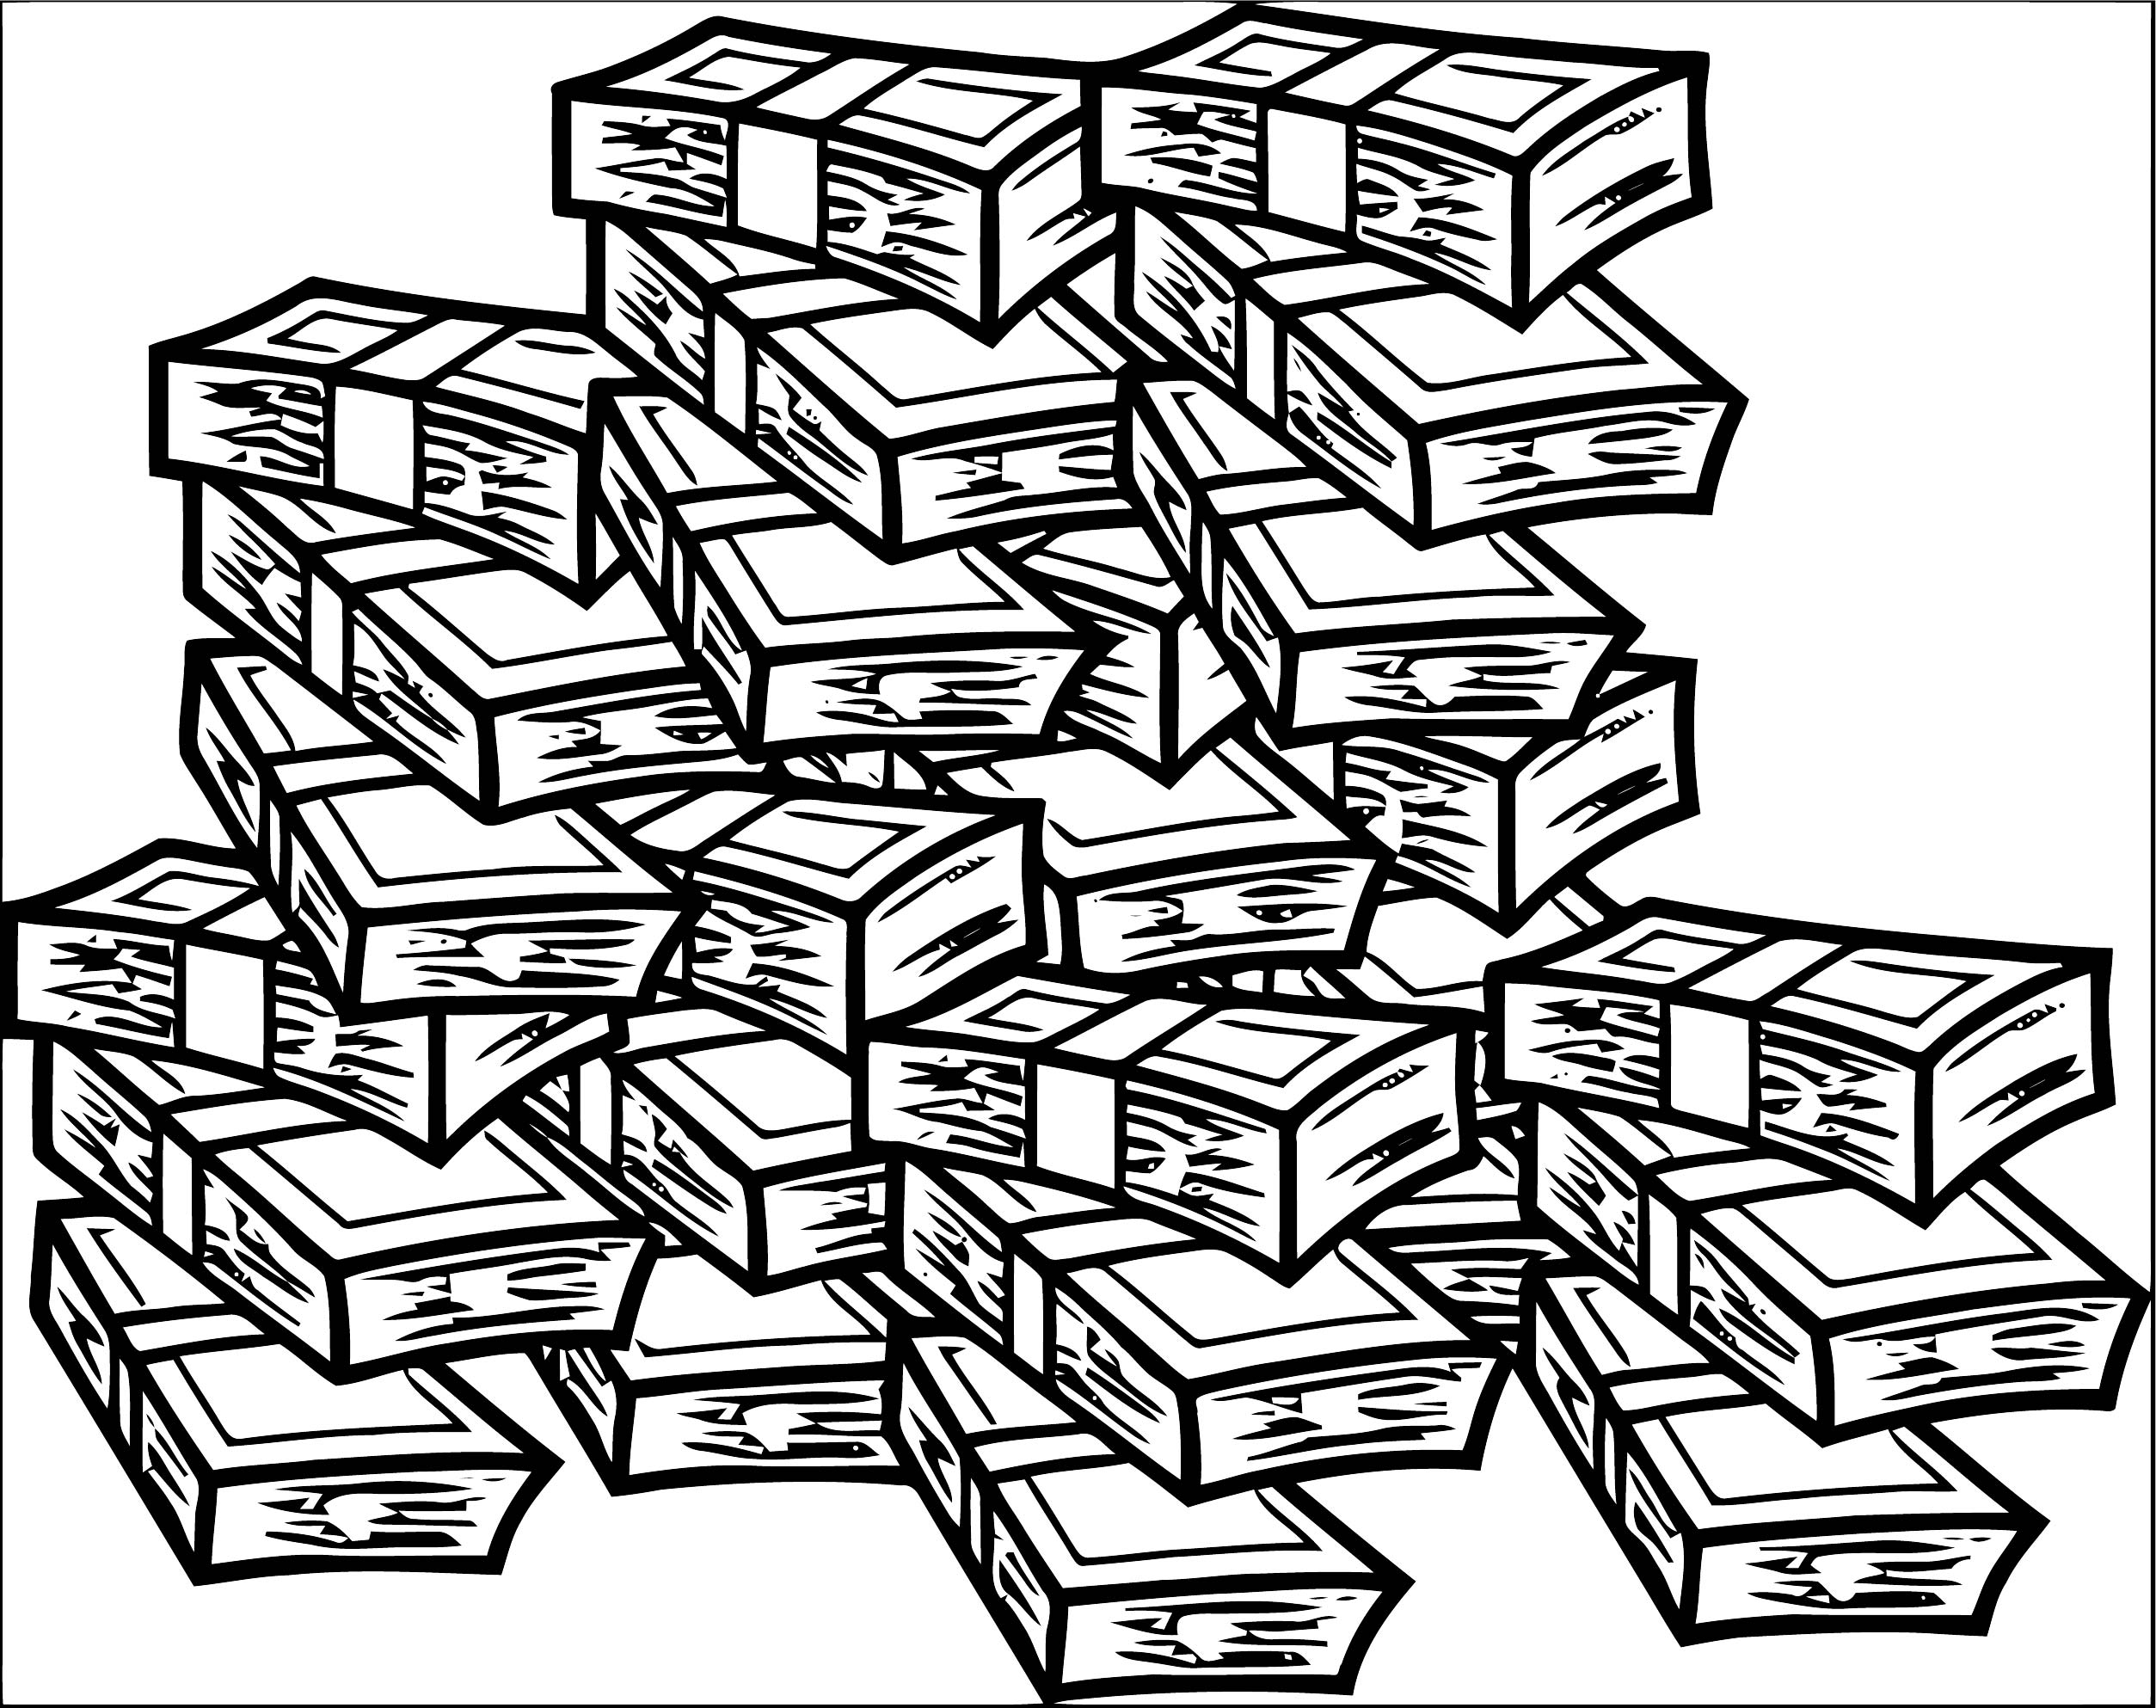 money coloring page money coloring page 55 wecoloringpagecom coloring money page